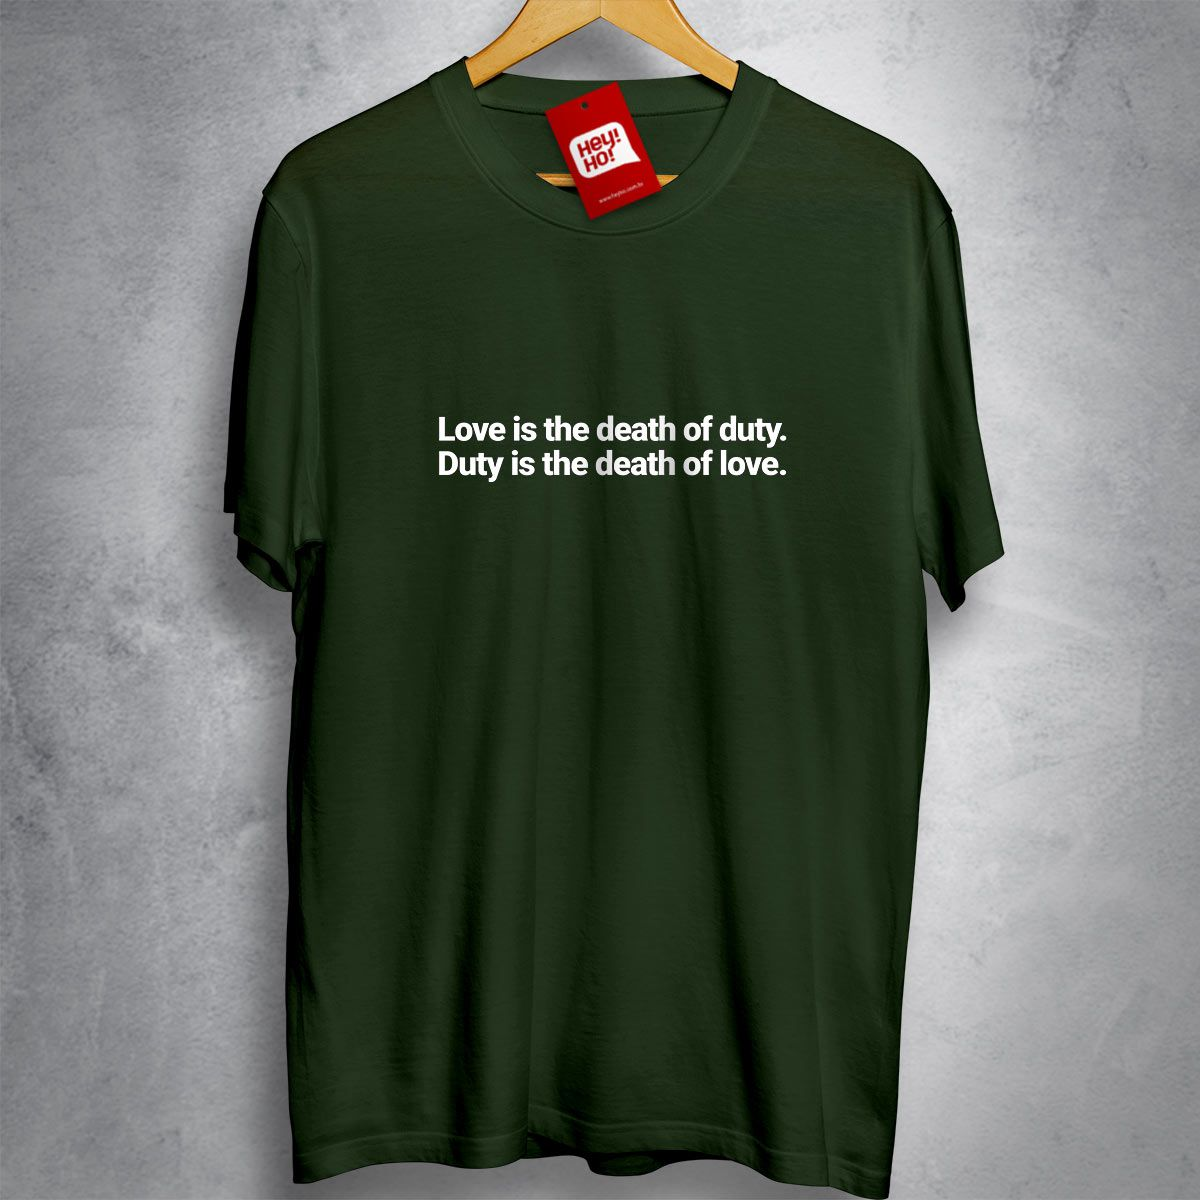 GAME OF THRONES - Love is the death of duty